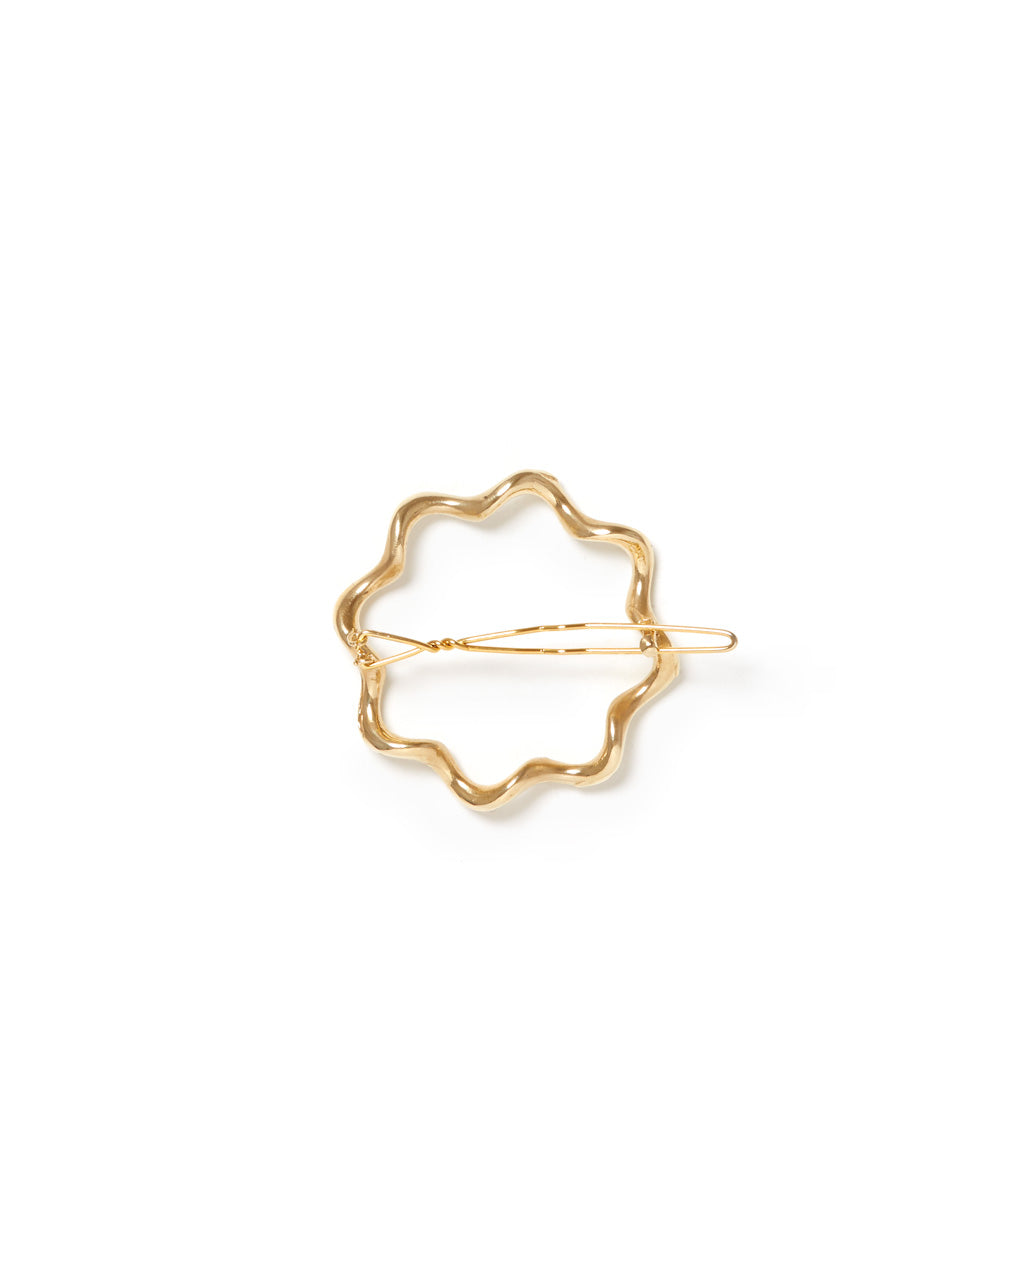 unique shaped gold barrette